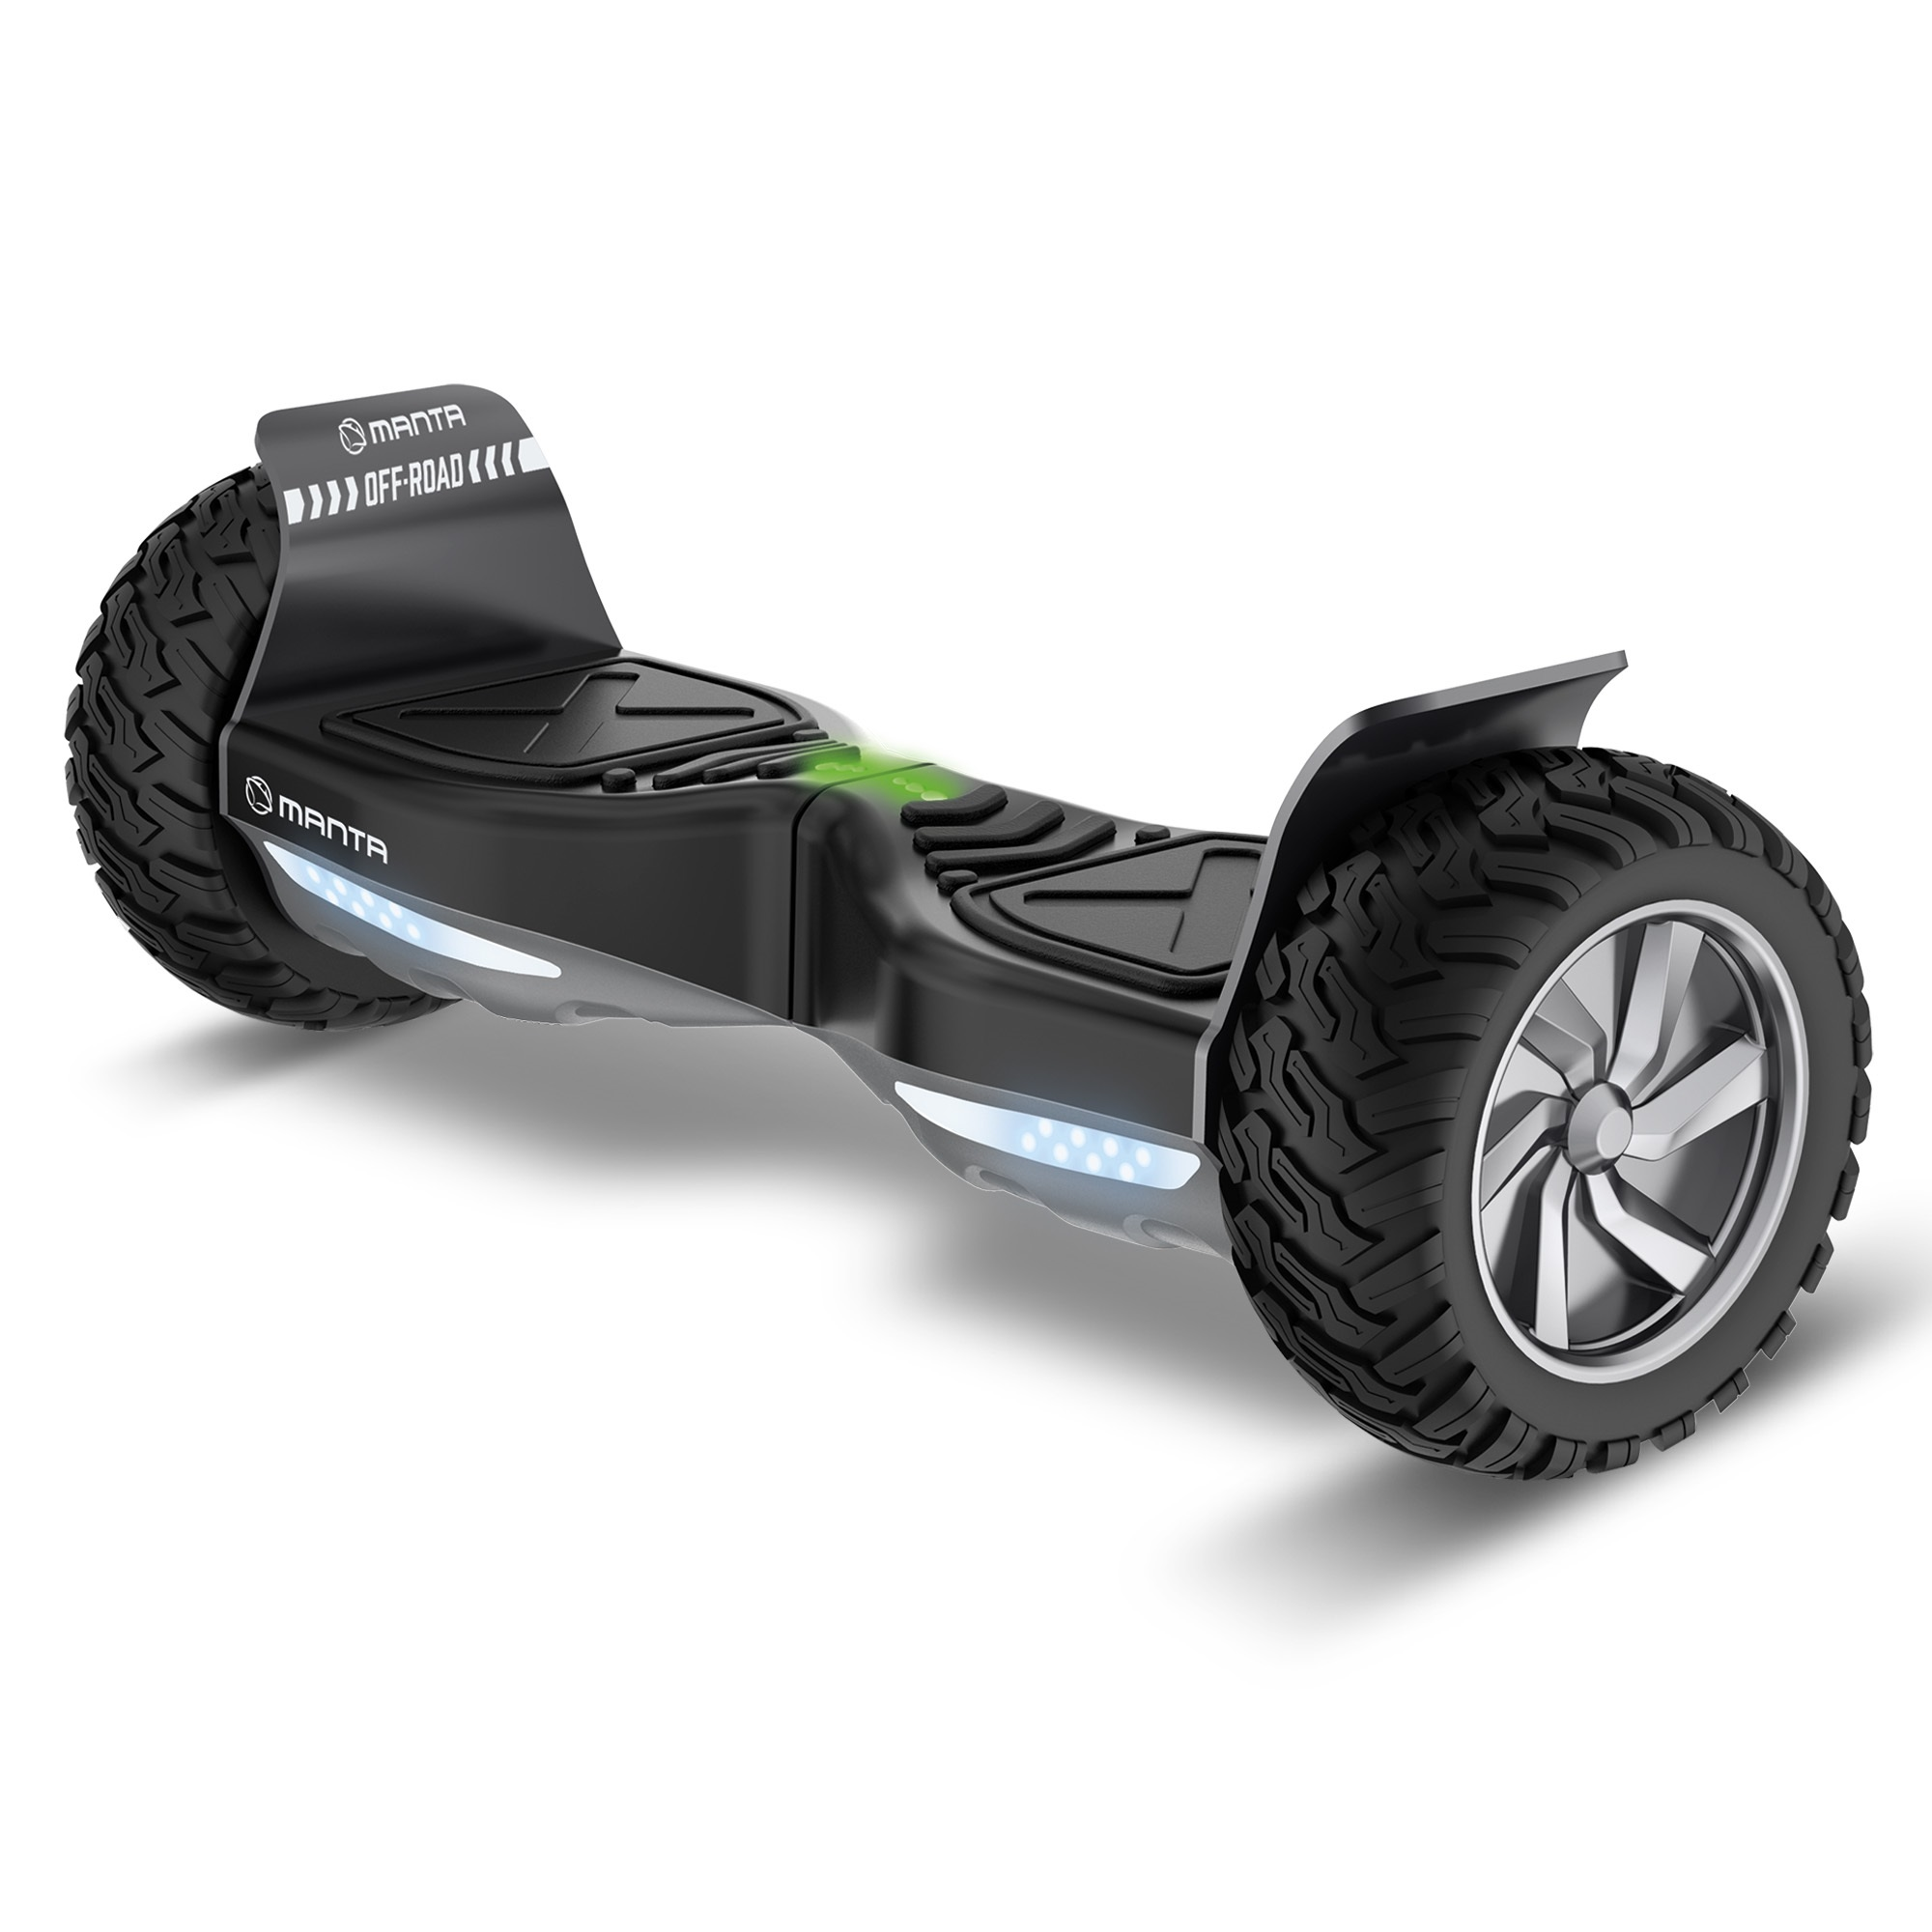 MSB9023 OFF ROAD - Hoverboard 8,5